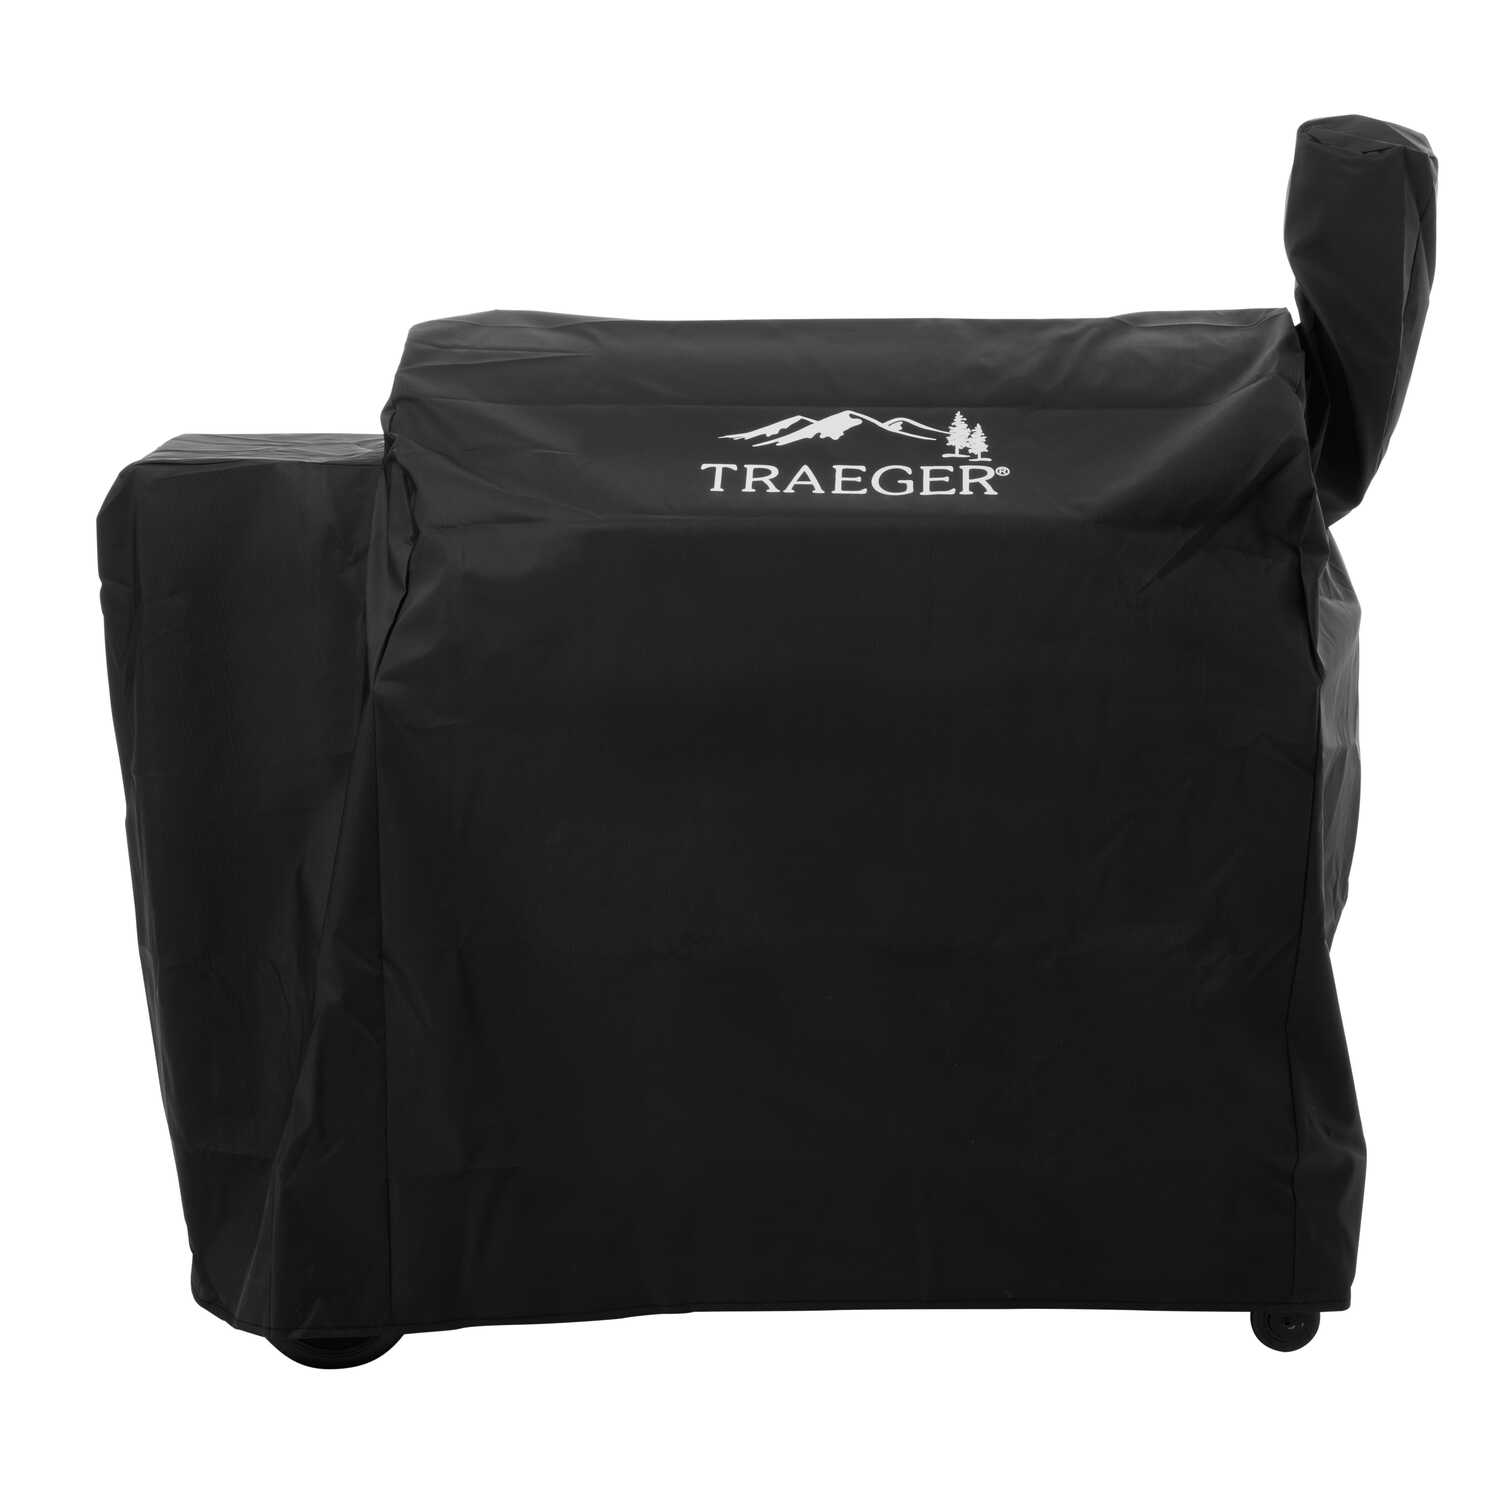 Traeger  Series 34  Black  Grill Cover  22 in. W x 49 in. D x 39 in. H For PRO 34 grills-TFB88PUB, T